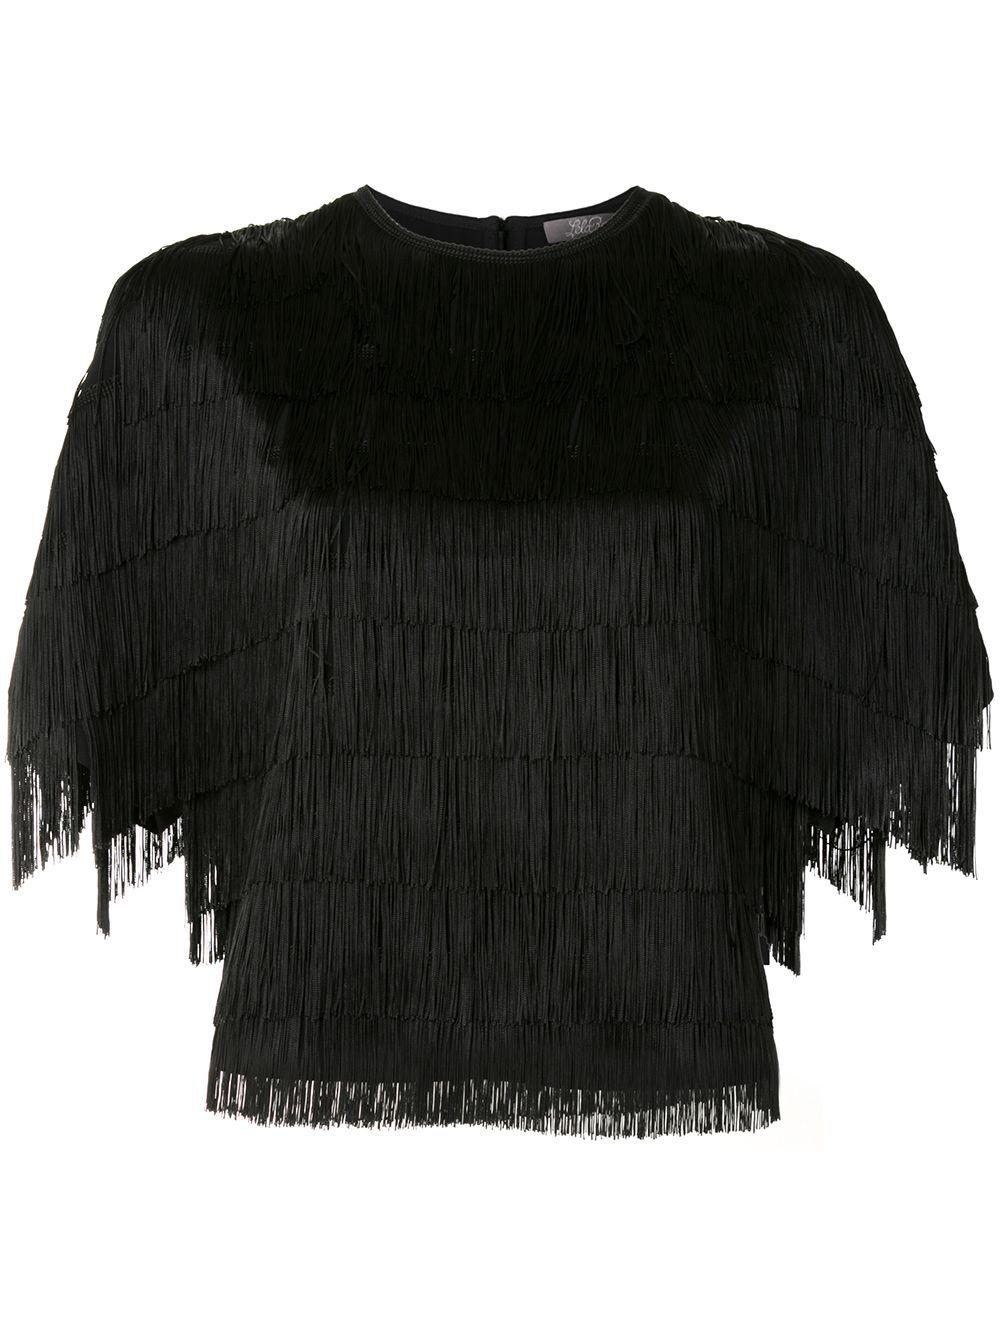 Fringe Top Item # PF202981